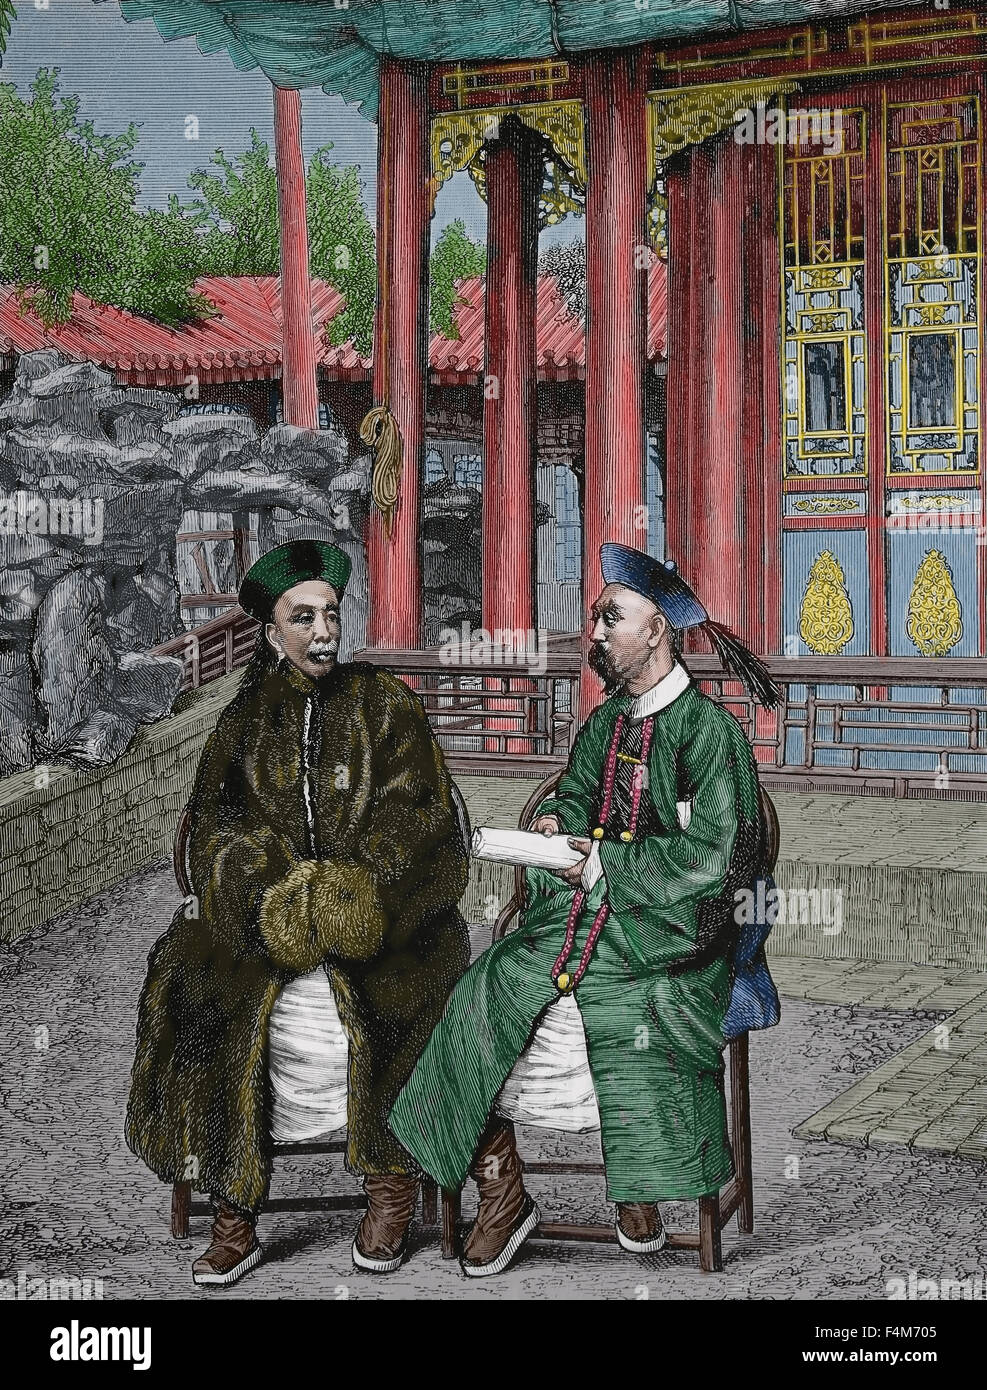 Asia. China. High Chinese officials, 1900. Engraving, 19th century. Color. - Stock Image